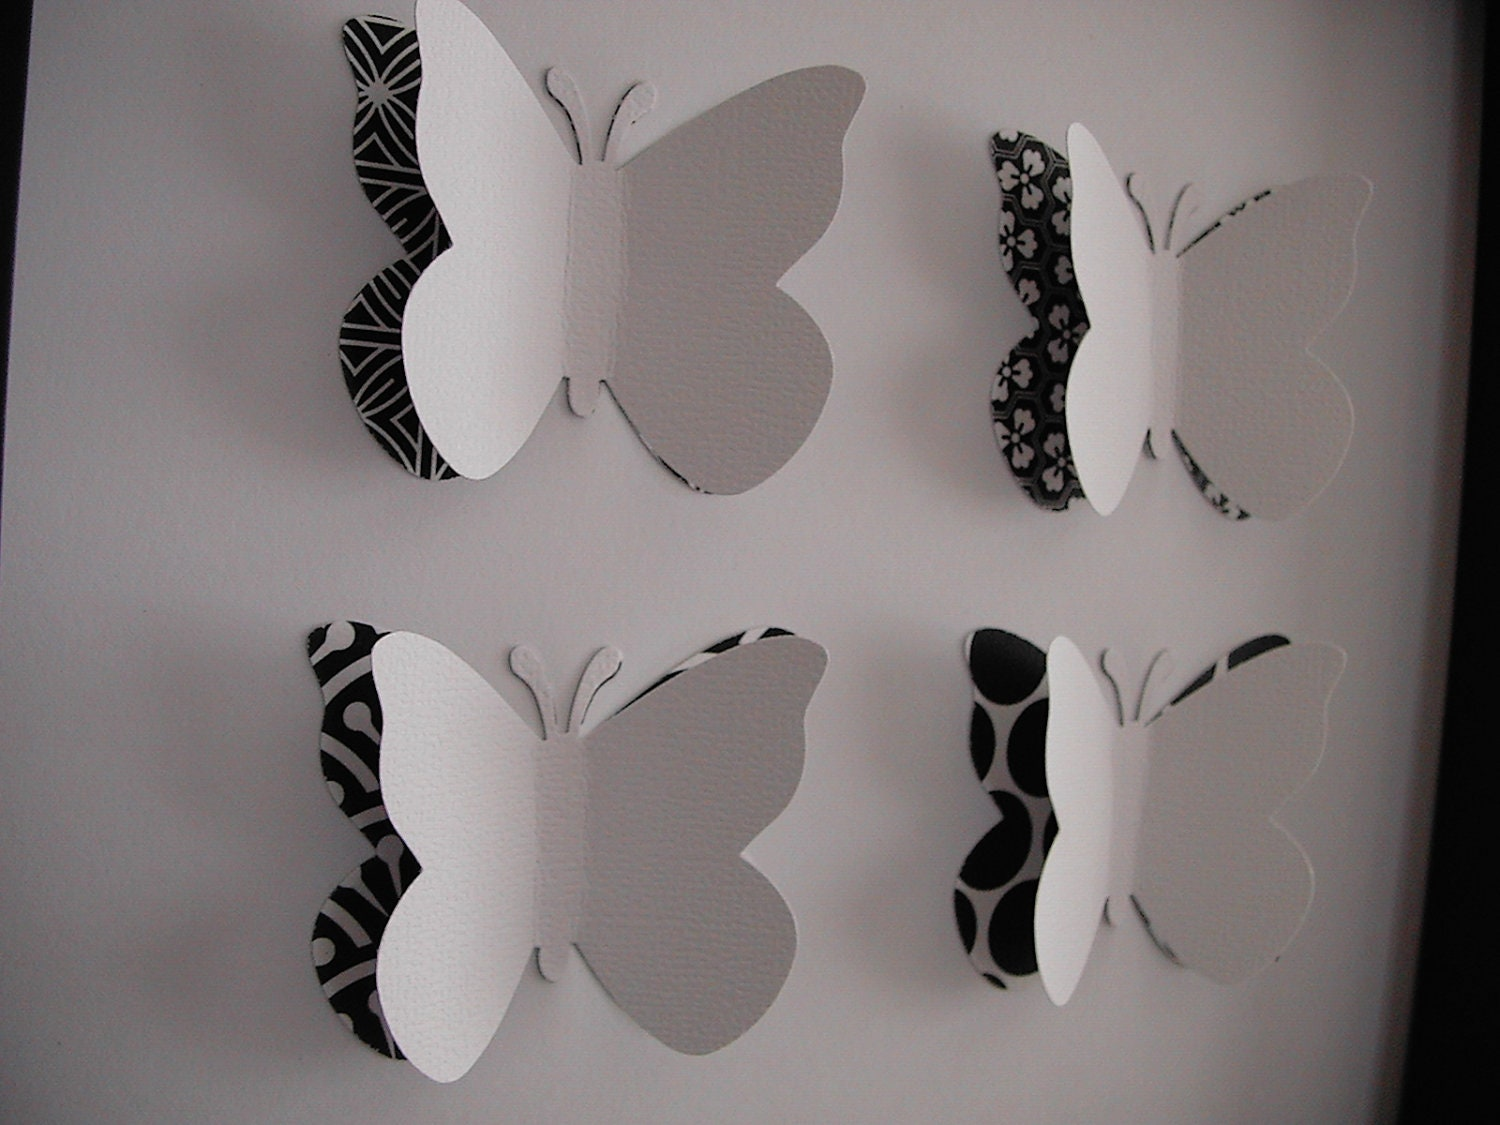 White Butterfly Wall Decor Target : D wall art black and white butterfly frame by girliesmile